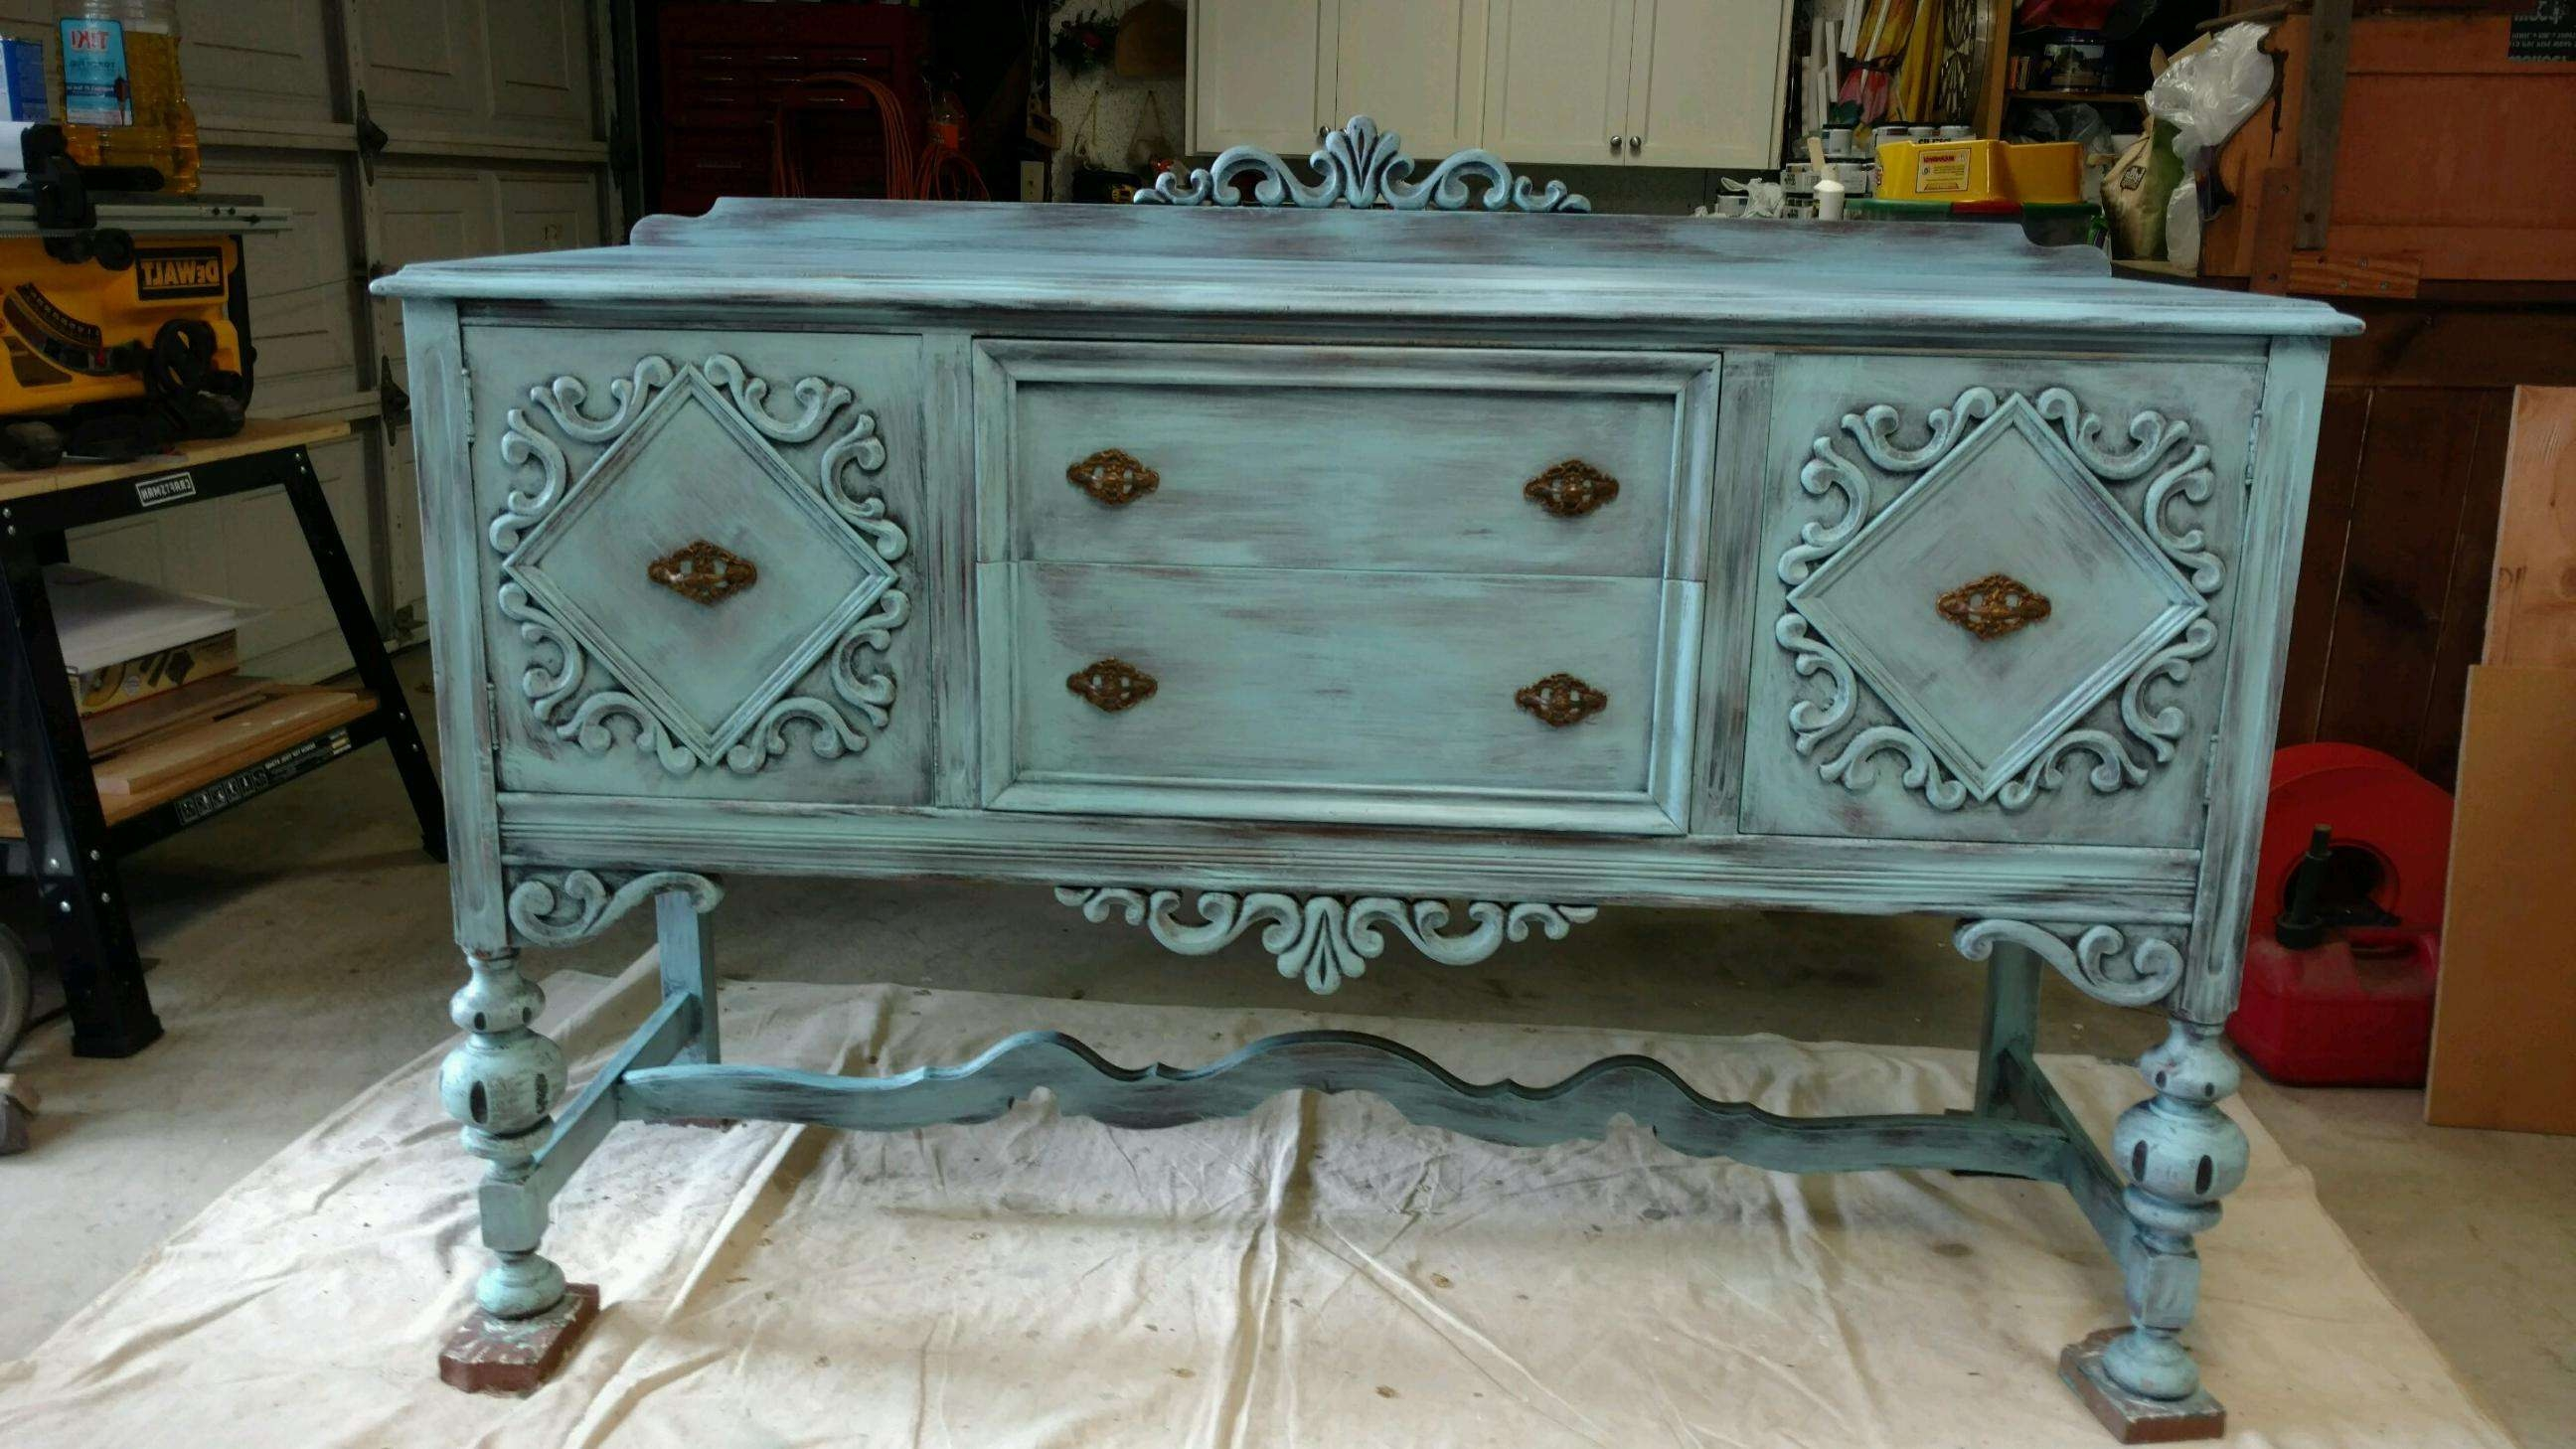 Antique Sideboard Buffet Intended For Antique Buffet Sideboards (View 19 of 20)